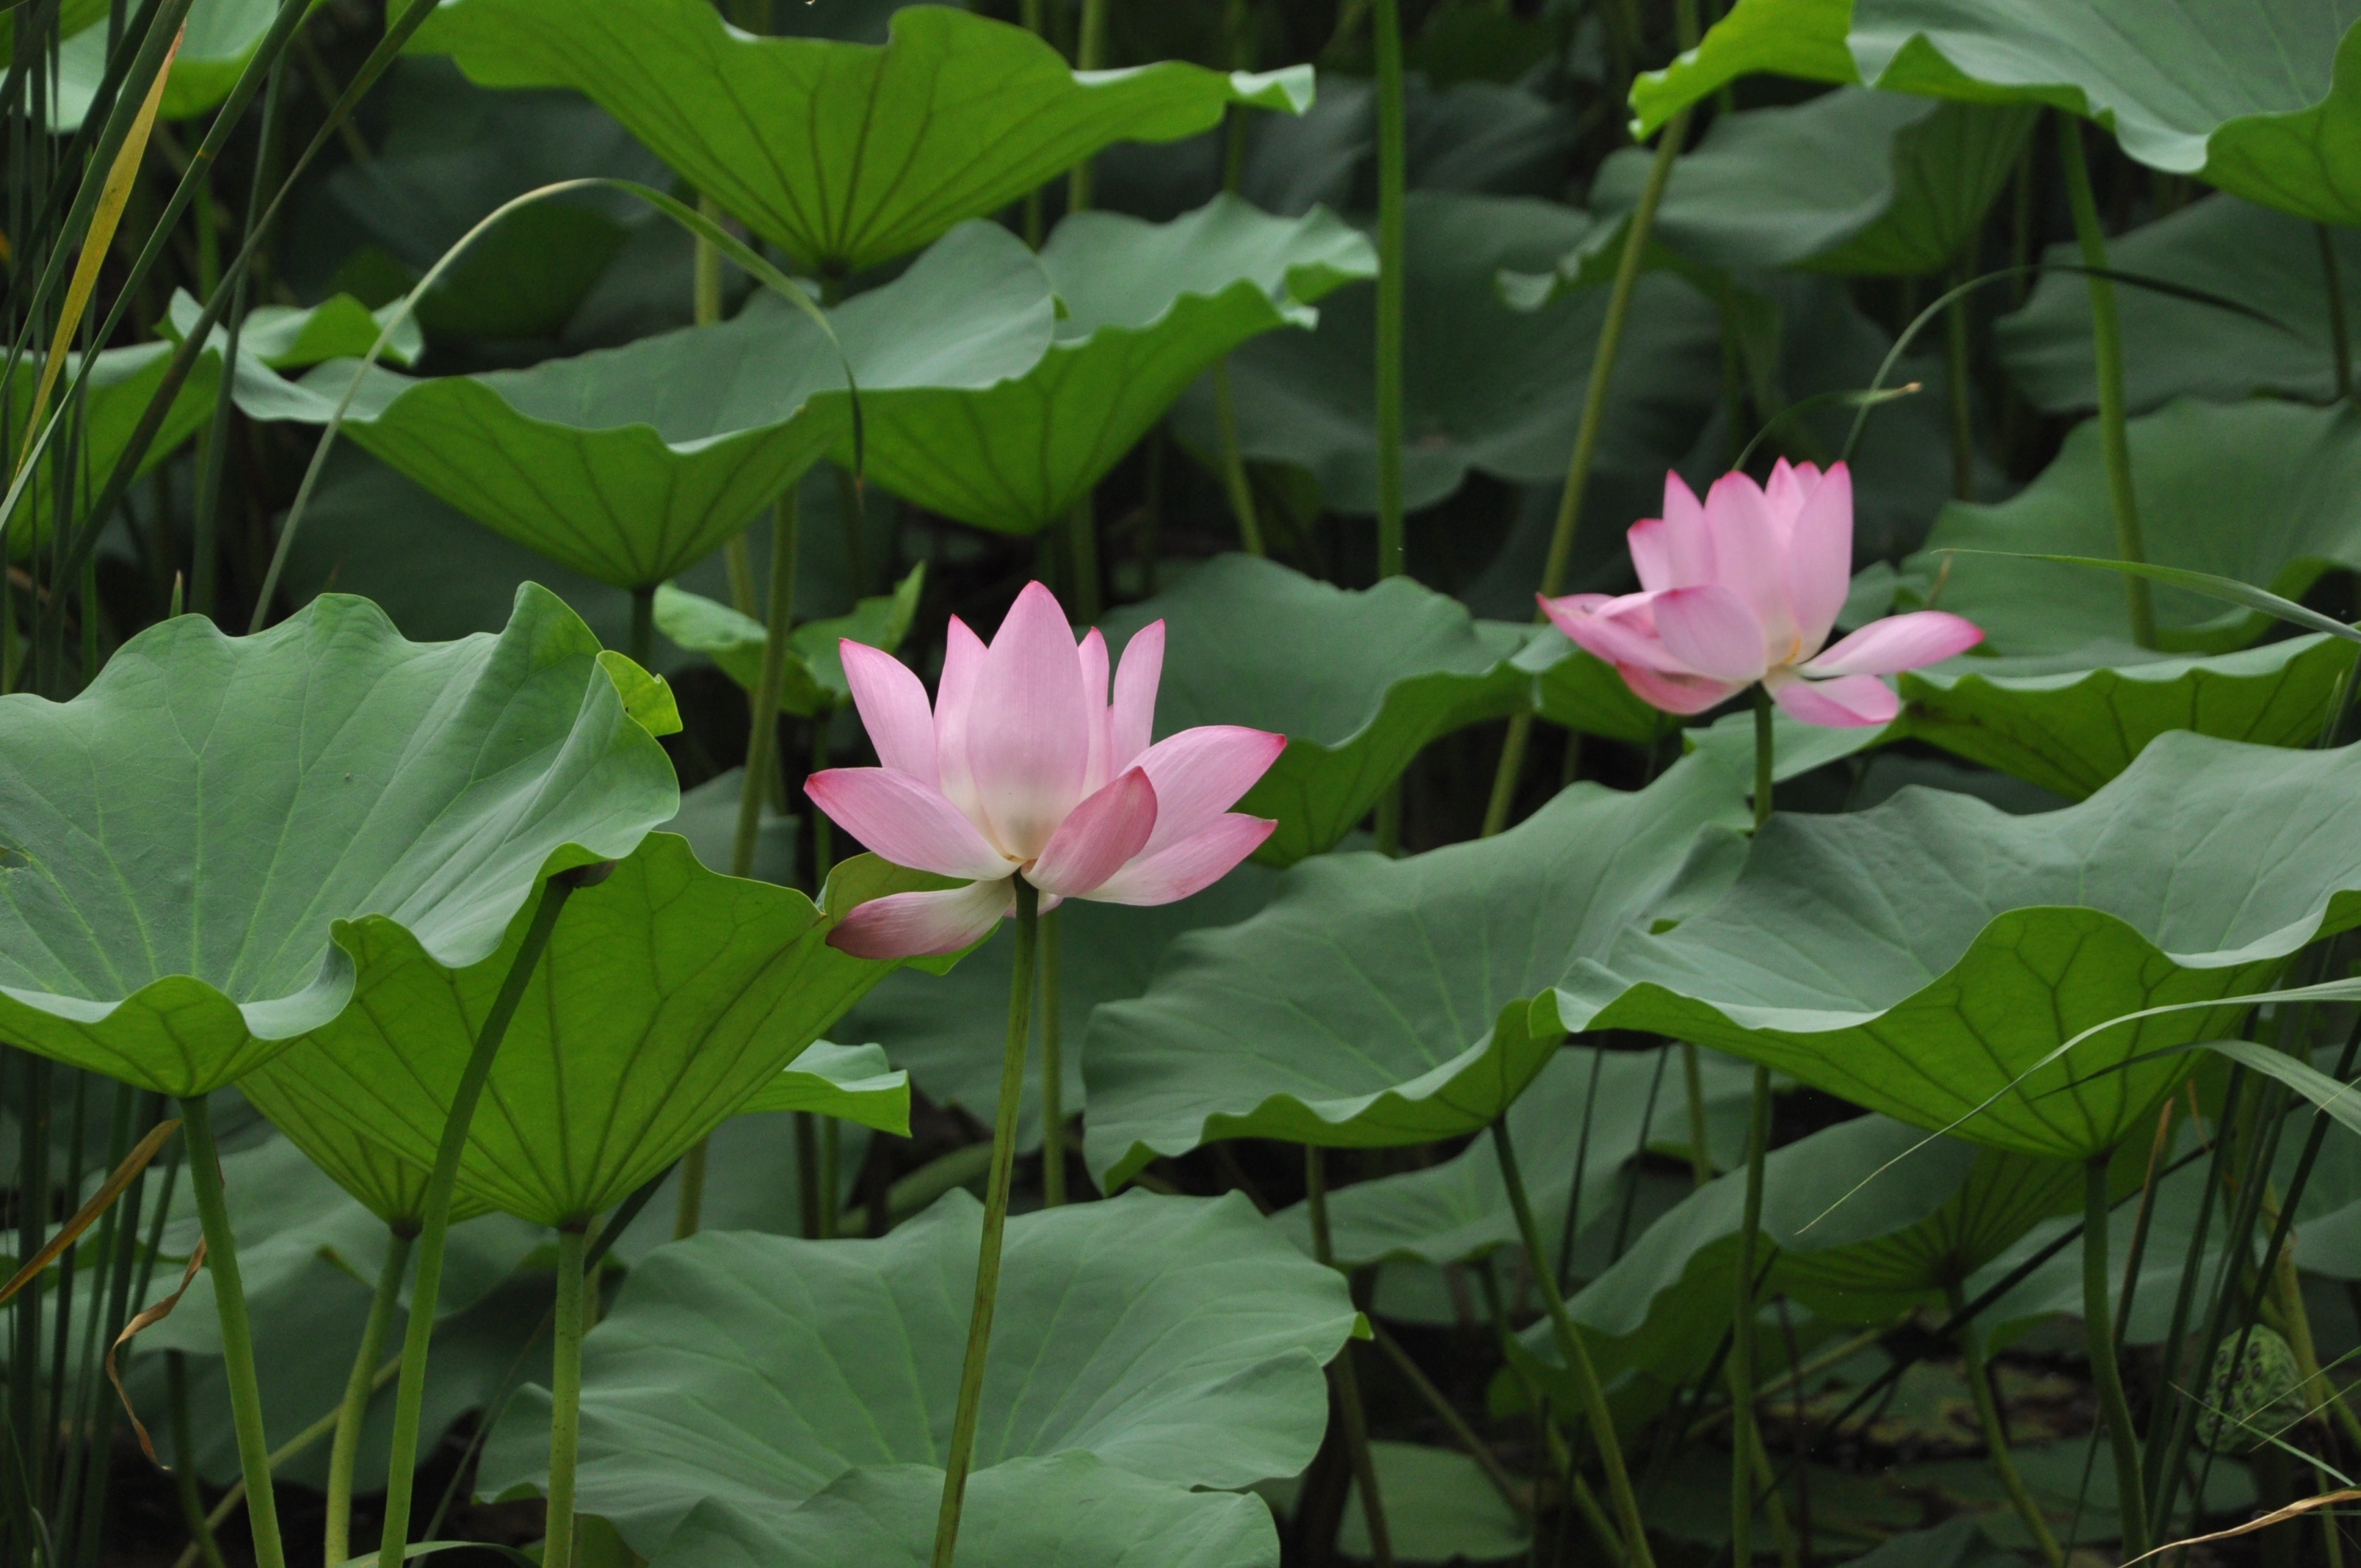 Two Lotus Flower Among The Huge Leaves Free Image